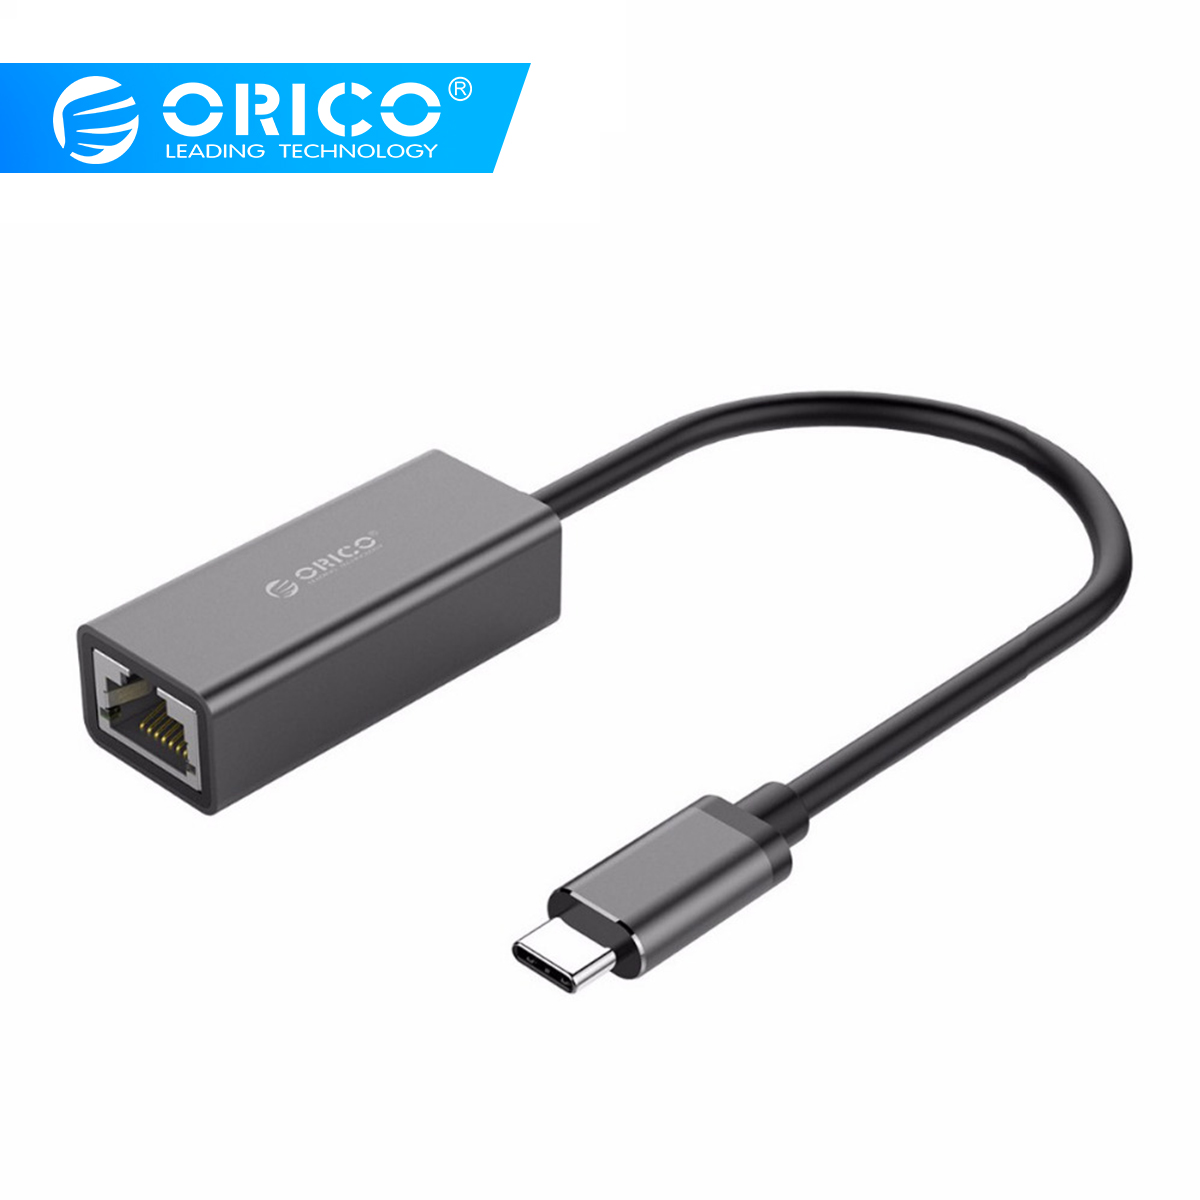 ORICO USB C 3.1 to RJ45 Gigabit Ethernet Adapter for MacBook Samsung Galaxy S9 S8 Huawei Mate P20 P10 Pro Type C USB 3.1 AdapterORICO USB C 3.1 to RJ45 Gigabit Ethernet Adapter for MacBook Samsung Galaxy S9 S8 Huawei Mate P20 P10 Pro Type C USB 3.1 Adapter